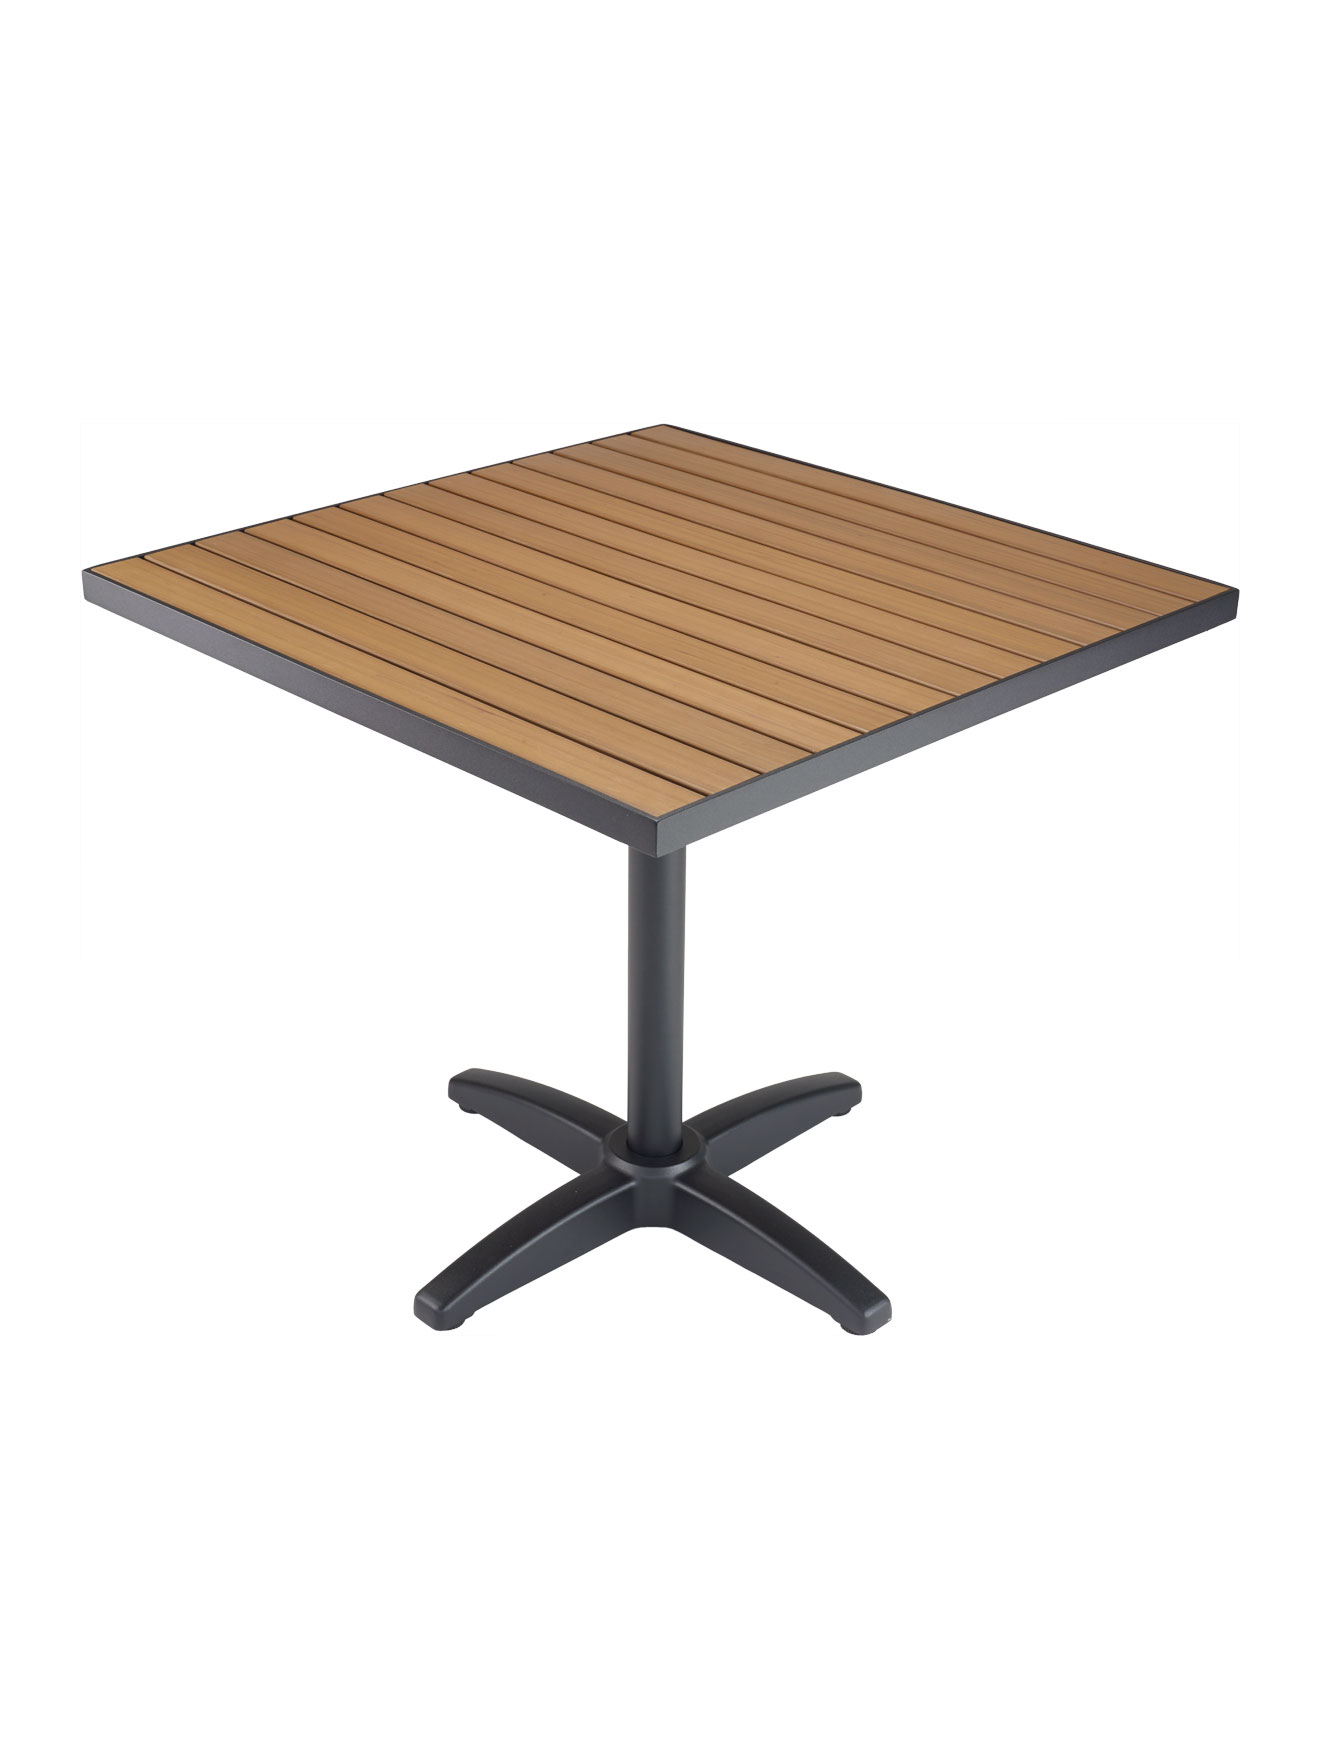 Picture of: Faux Teak Metal Frame Square Table Top Sttapt Commercial Restaurant Furniture Table Tops